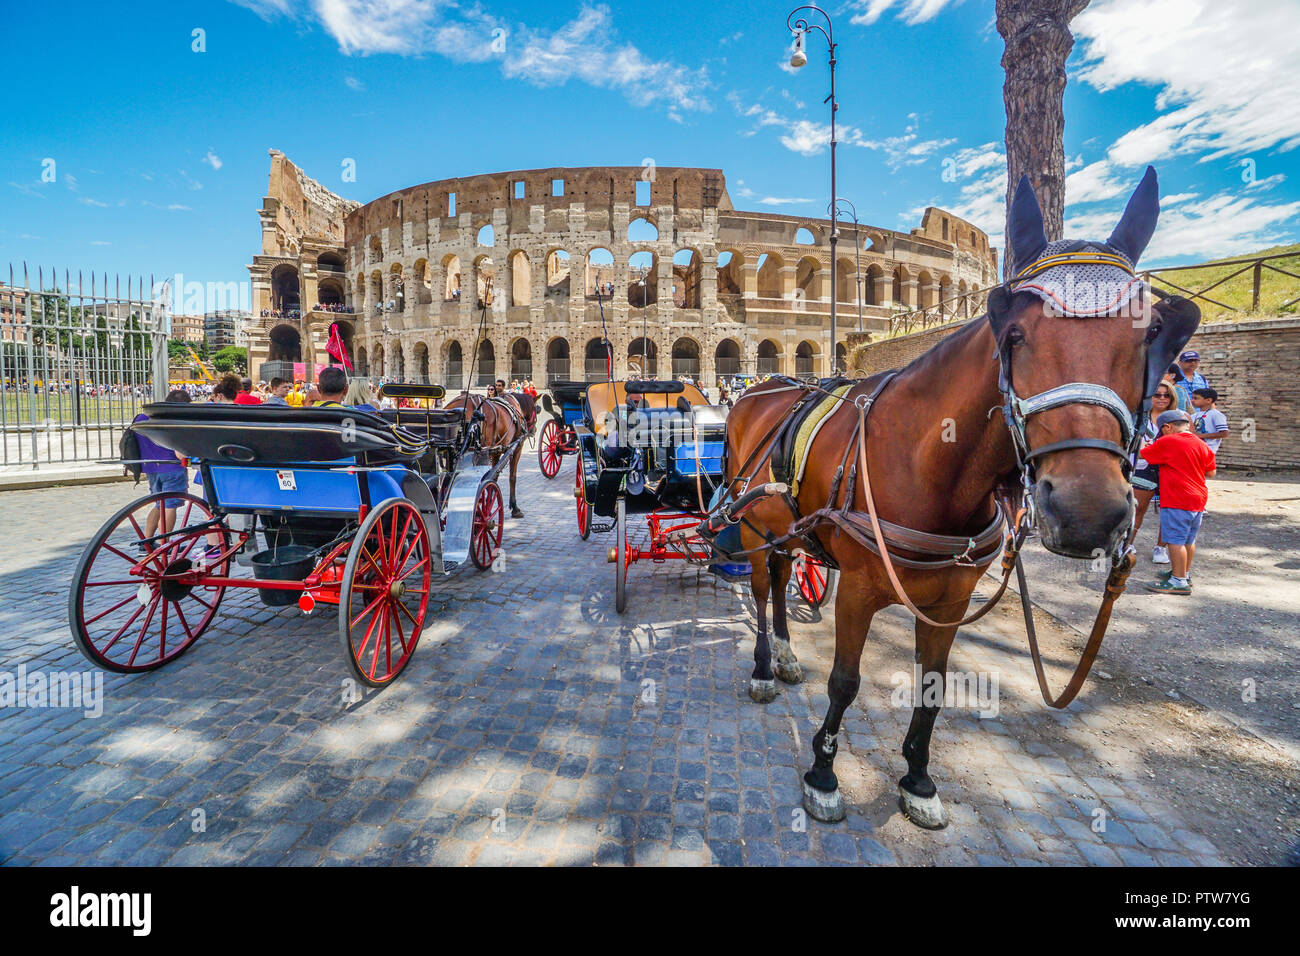 horse-drawn carriages await fares the Colosseum, the largest Roman amphitheatre ever built and one of Rome's most iconic tourist attractions - Stock Image